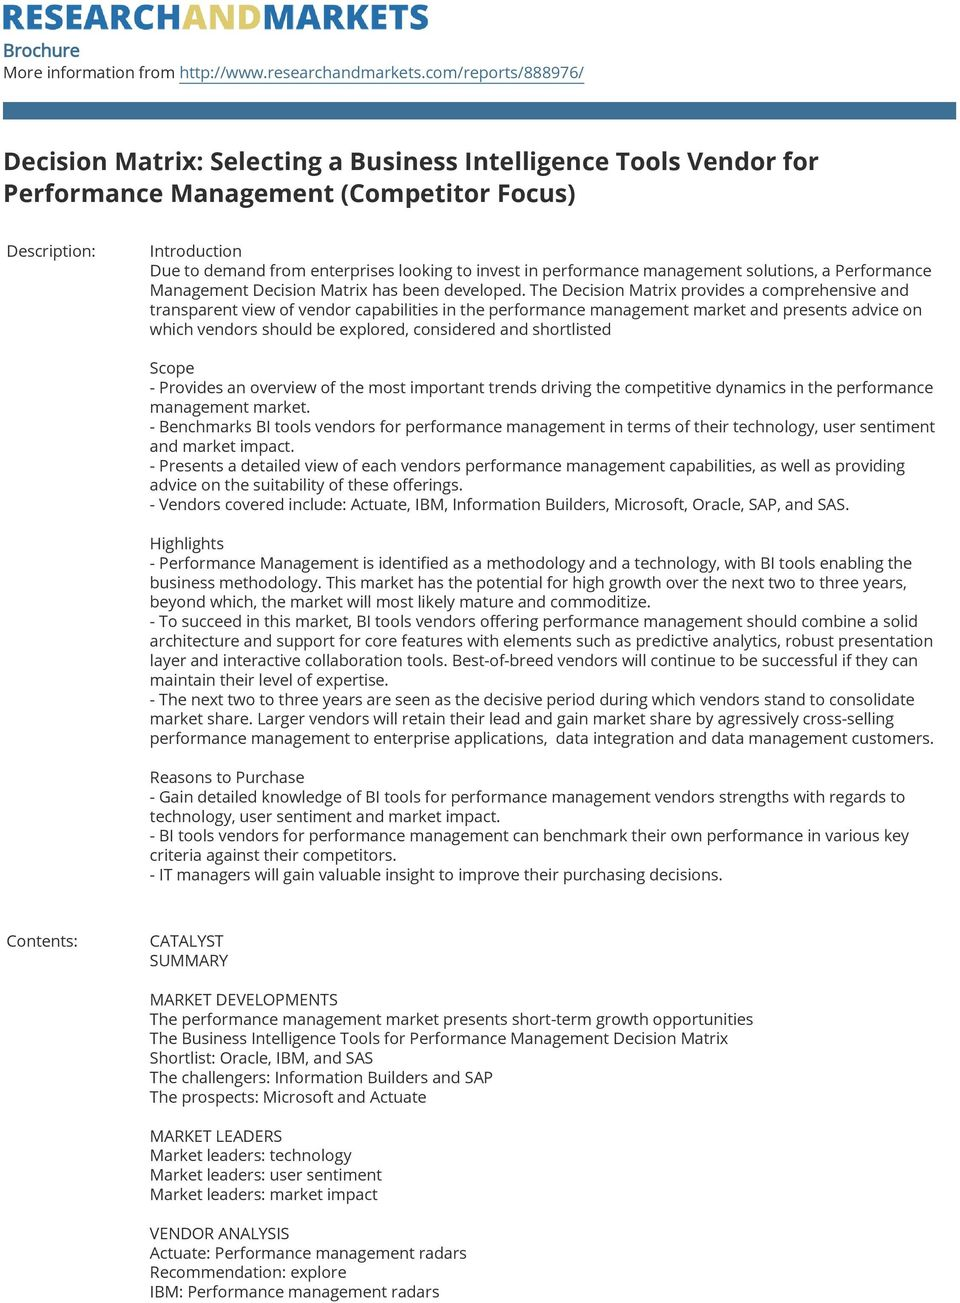 invest in performance management solutions, a Performance Management Decision Matrix has been developed.